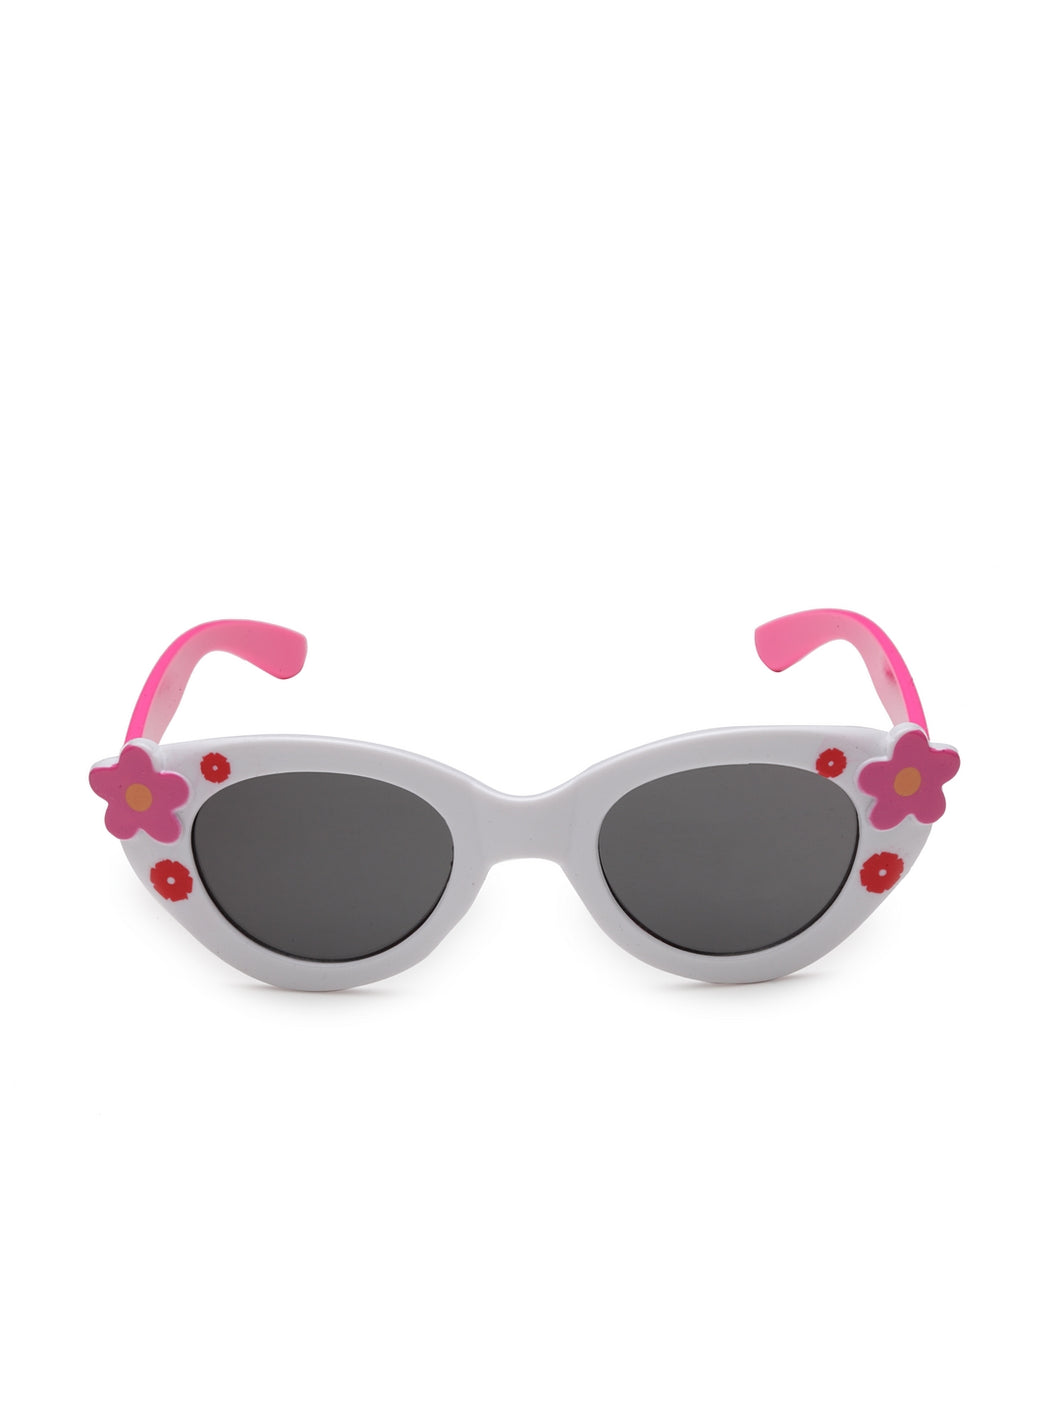 Stol'n Premium Attractive Fashionable UV-Protected Oval shape Sunglasses - Pink and White